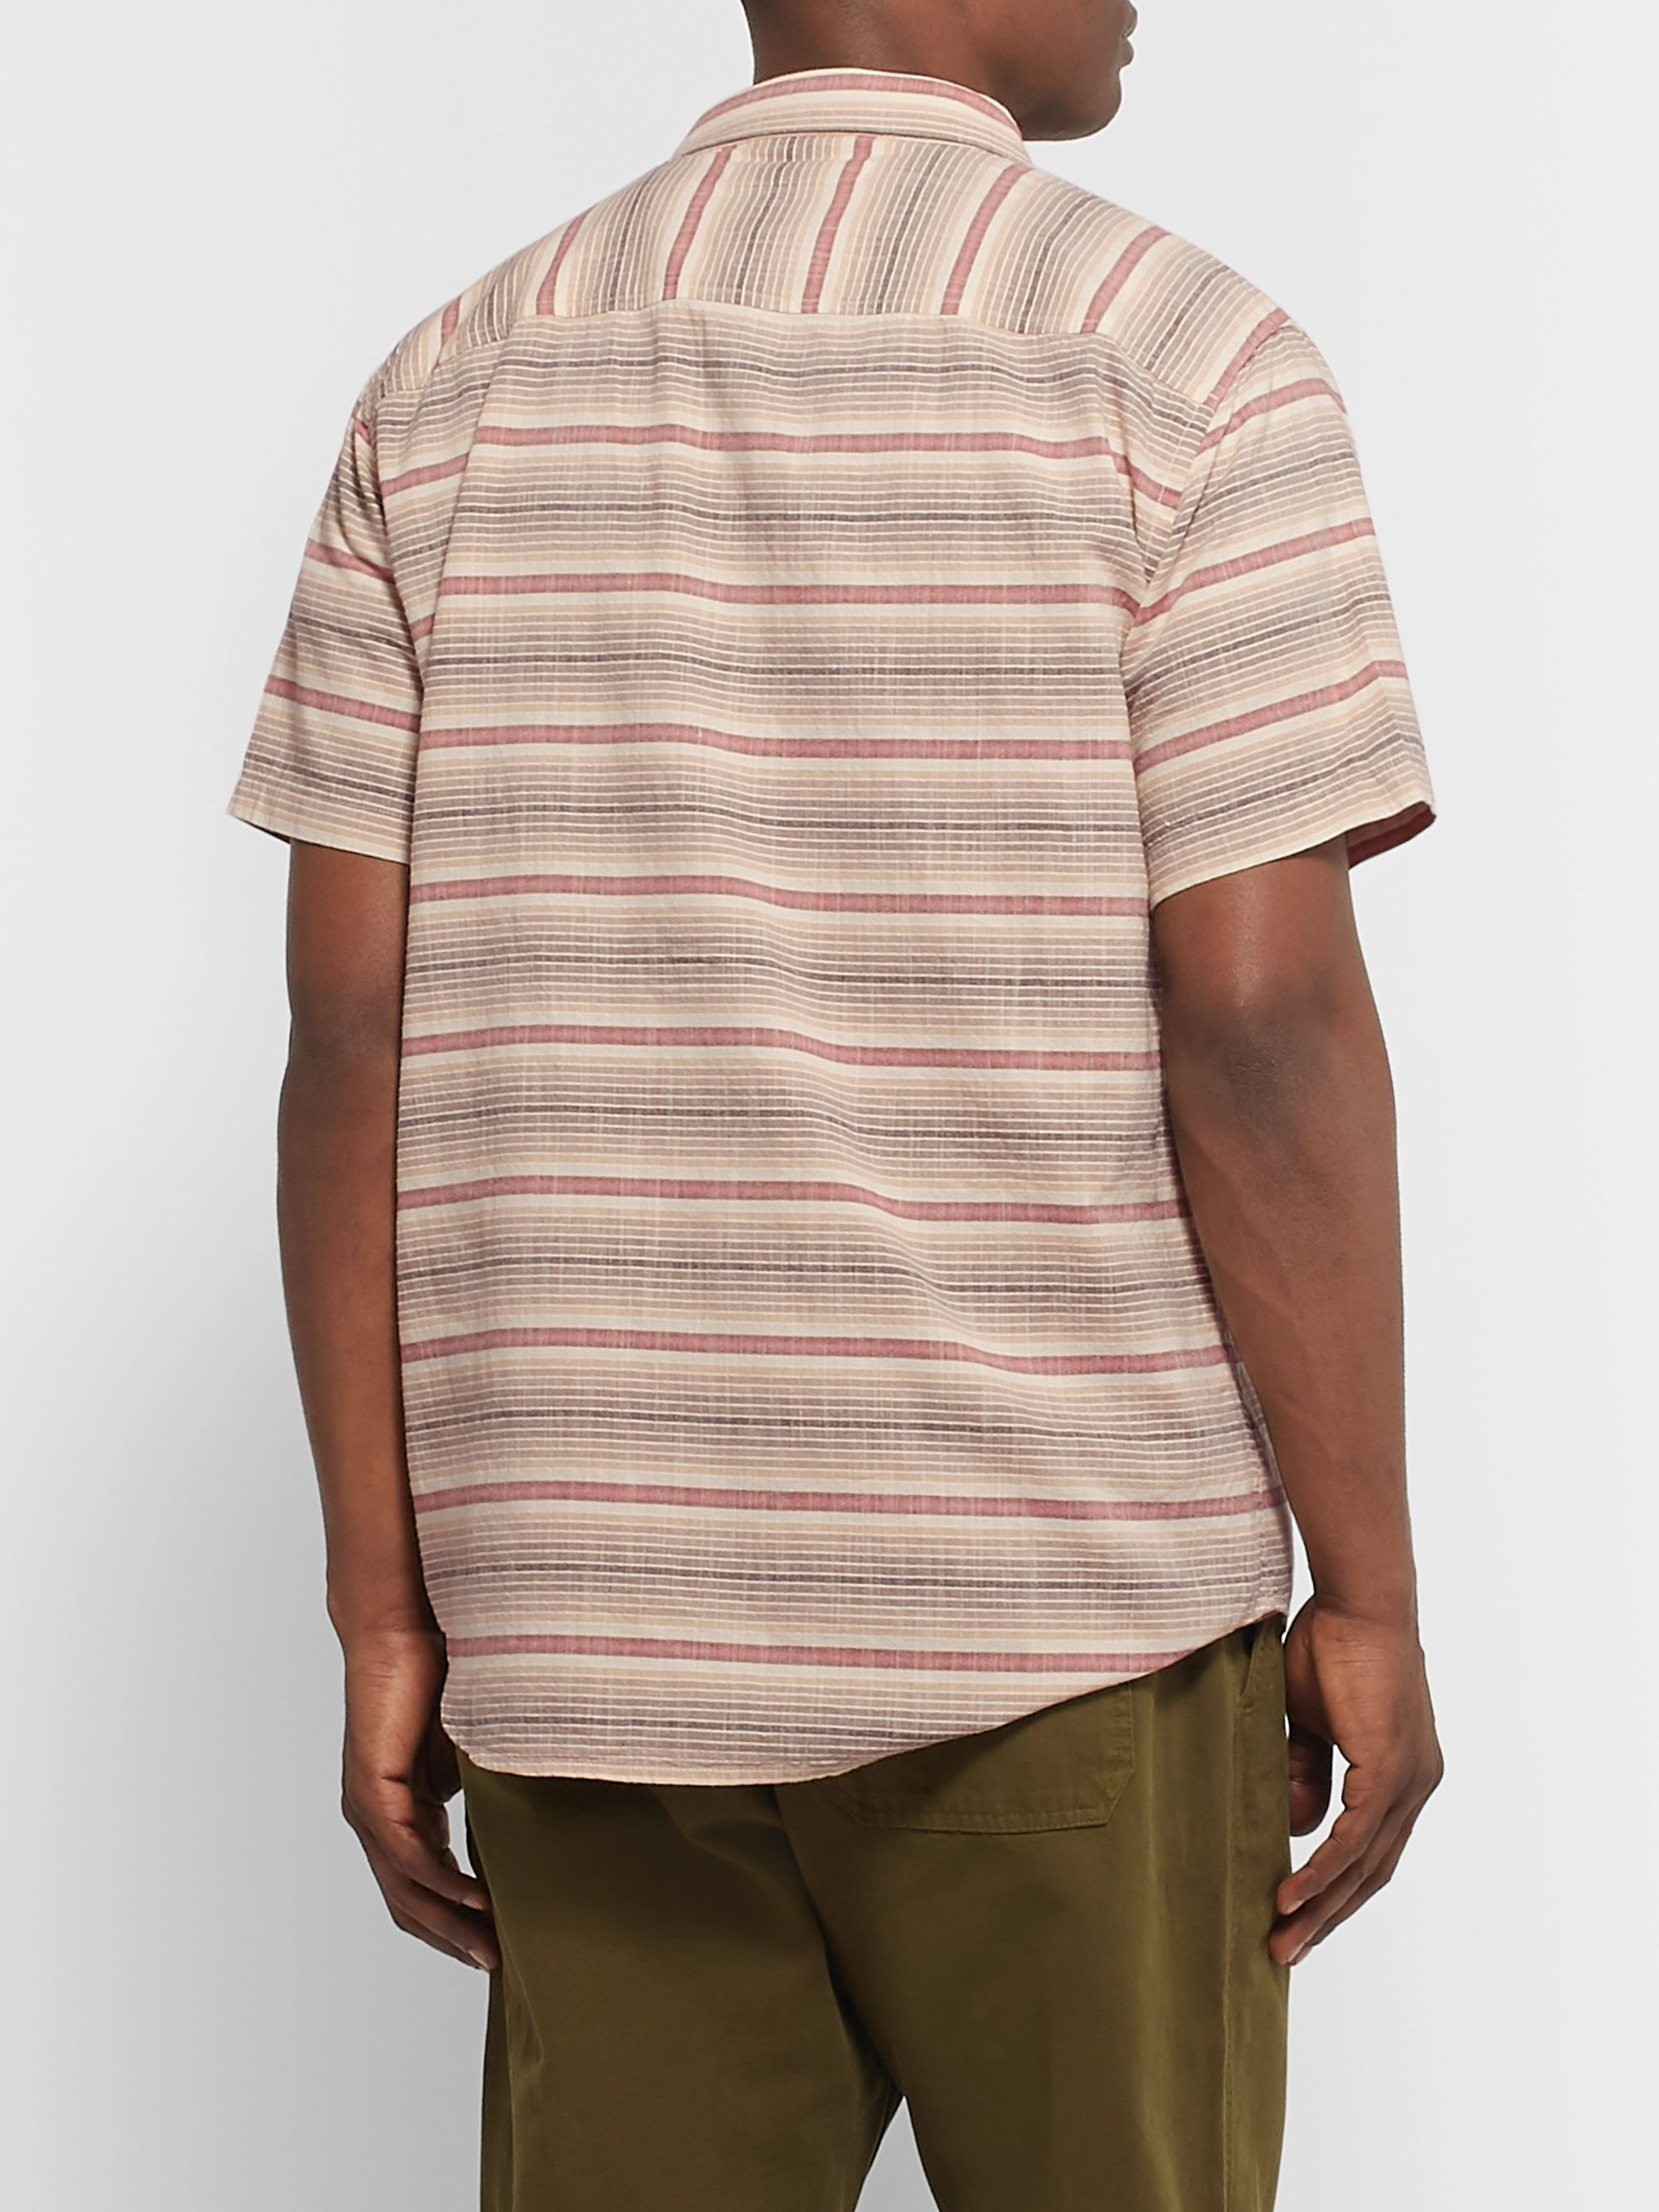 Outerknown S.E.A Striped Organic Cotton Shirt